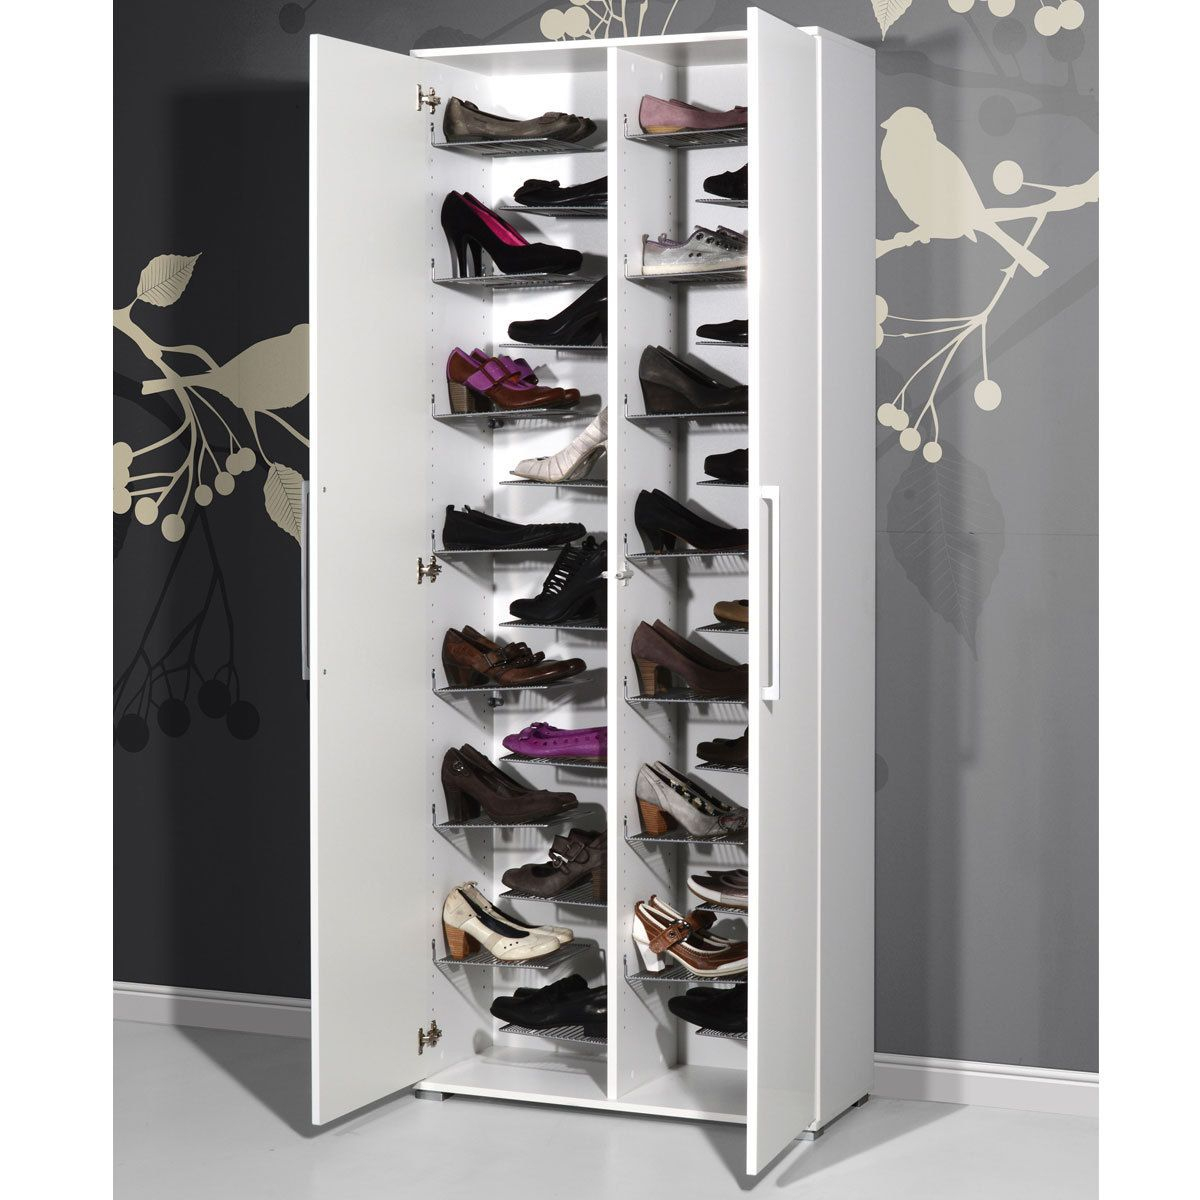 Meuble Chaussures Meuble À Chaussures Stiletto Blanc Meuble encequiconcerne Meuble À Chaussures Fly